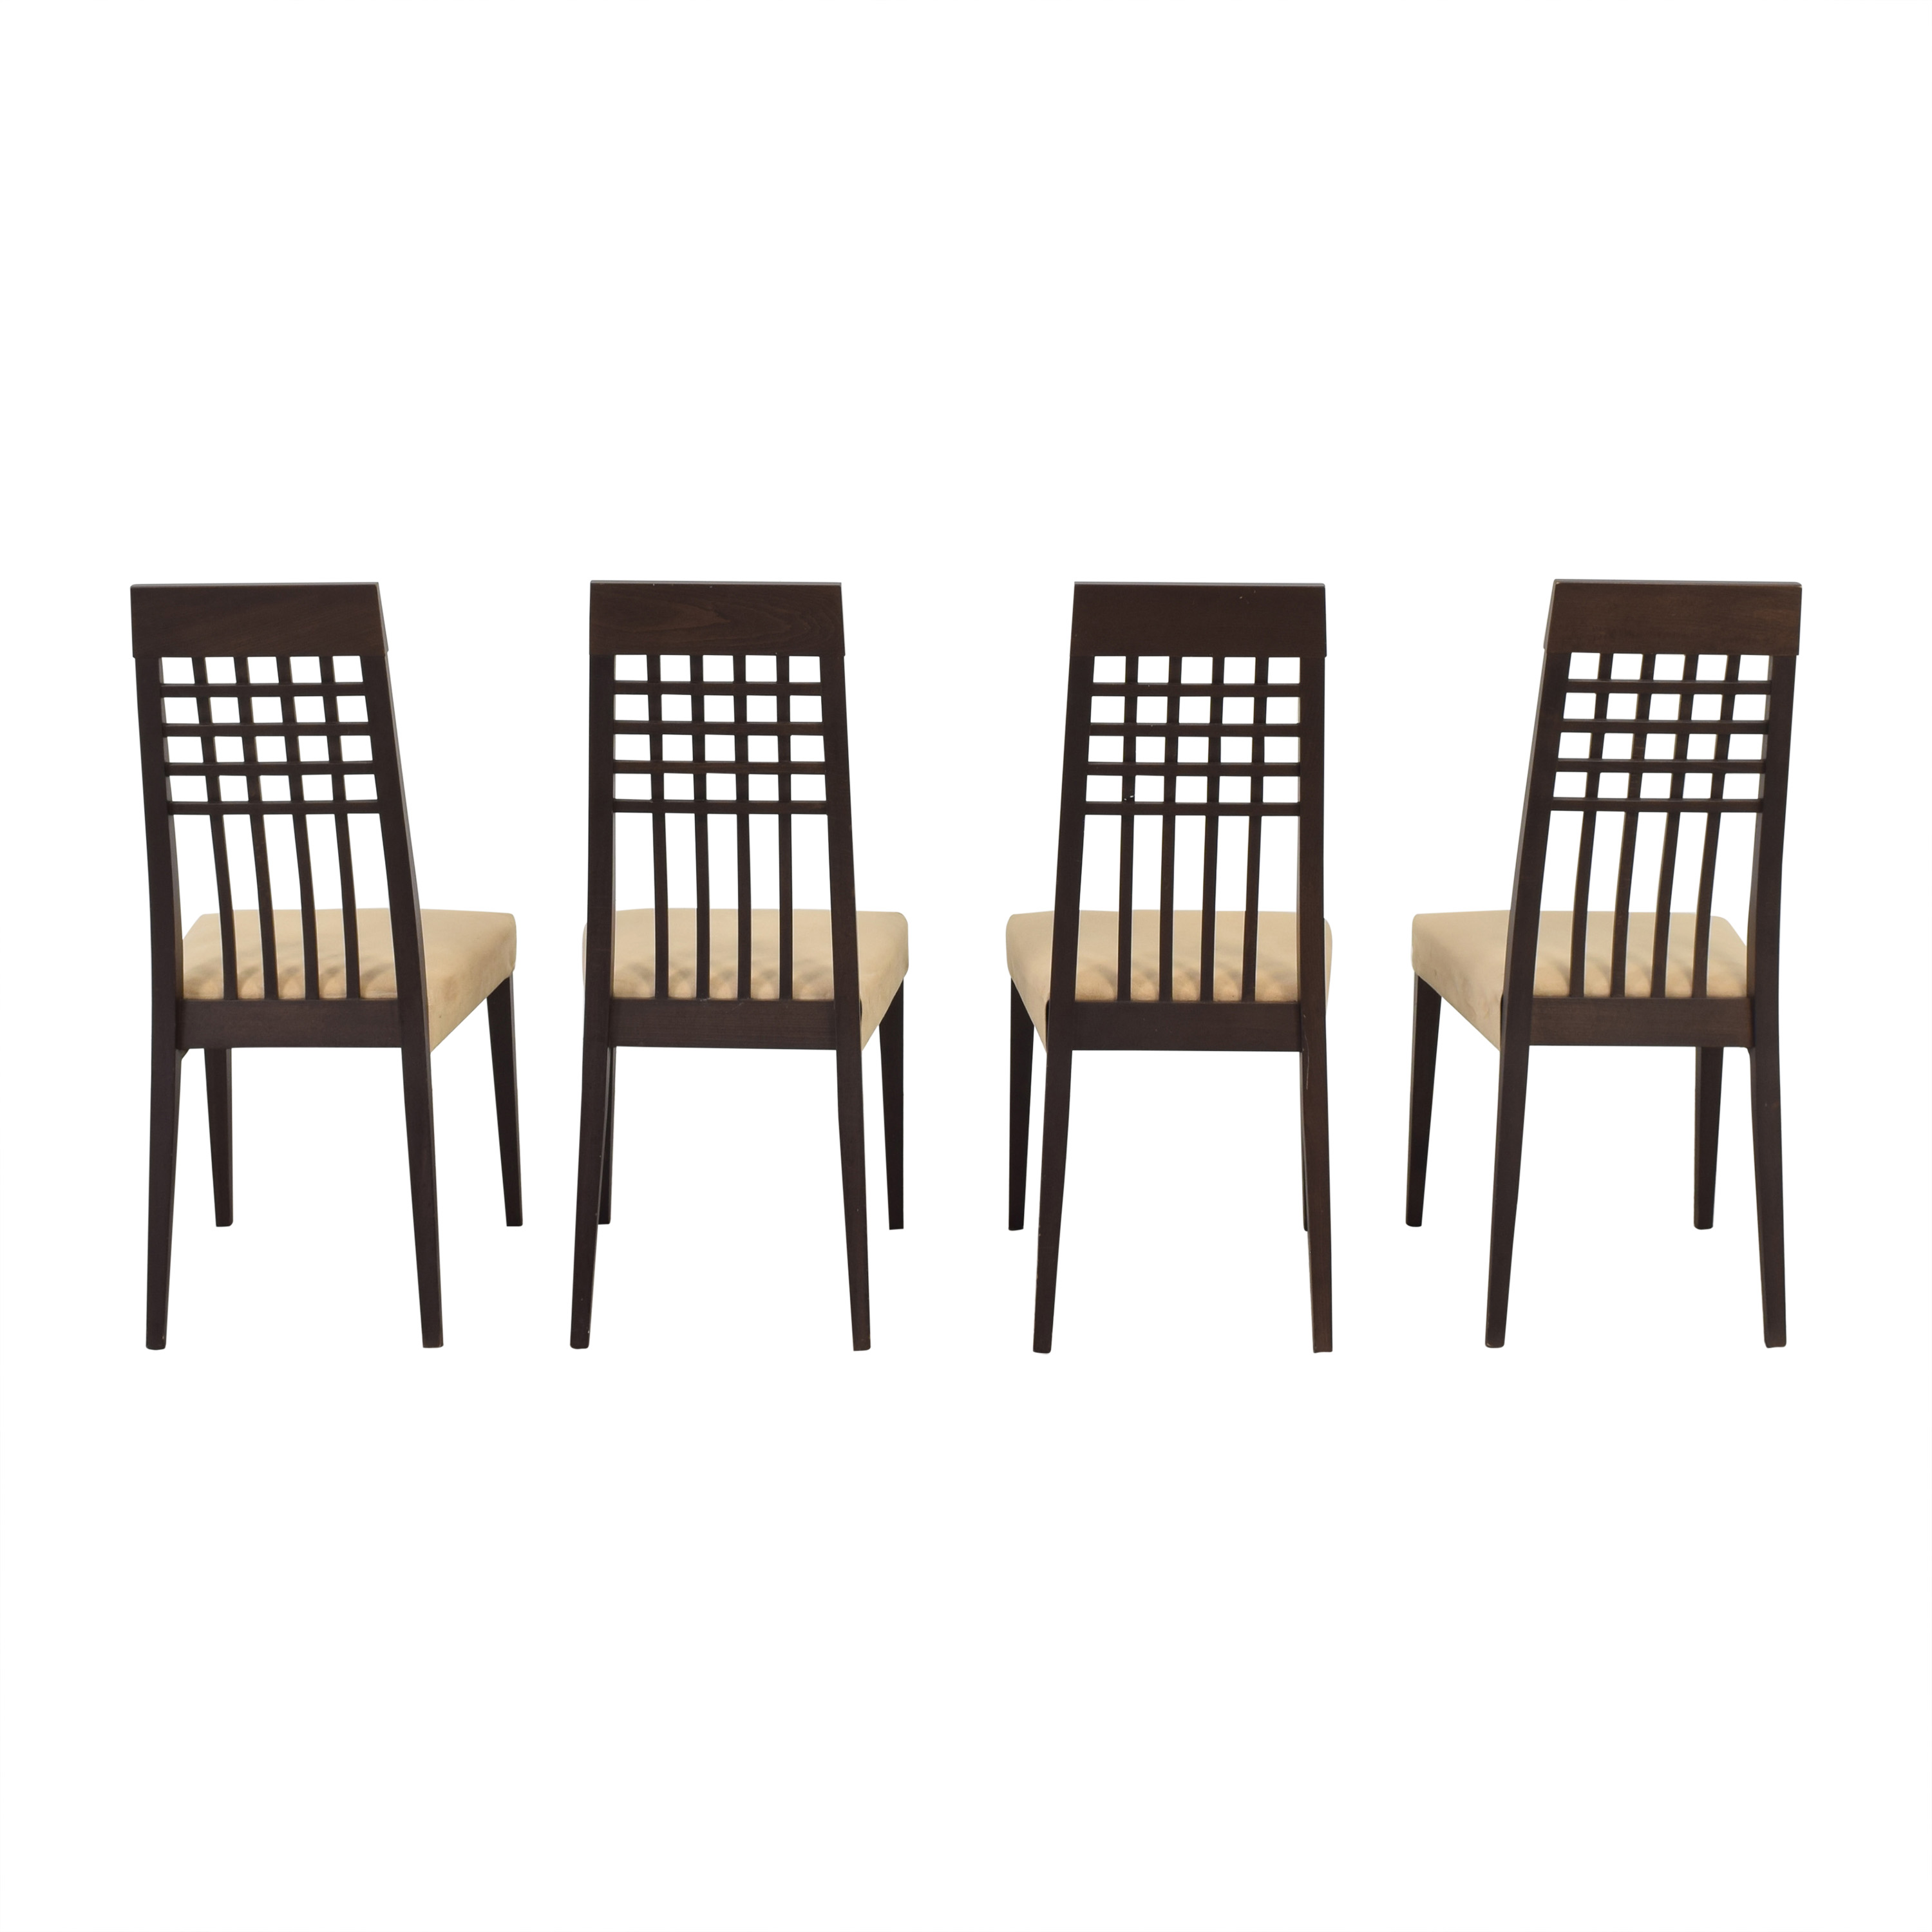 Calligaris Calligaris Upholstered Dining Chairs dimensions